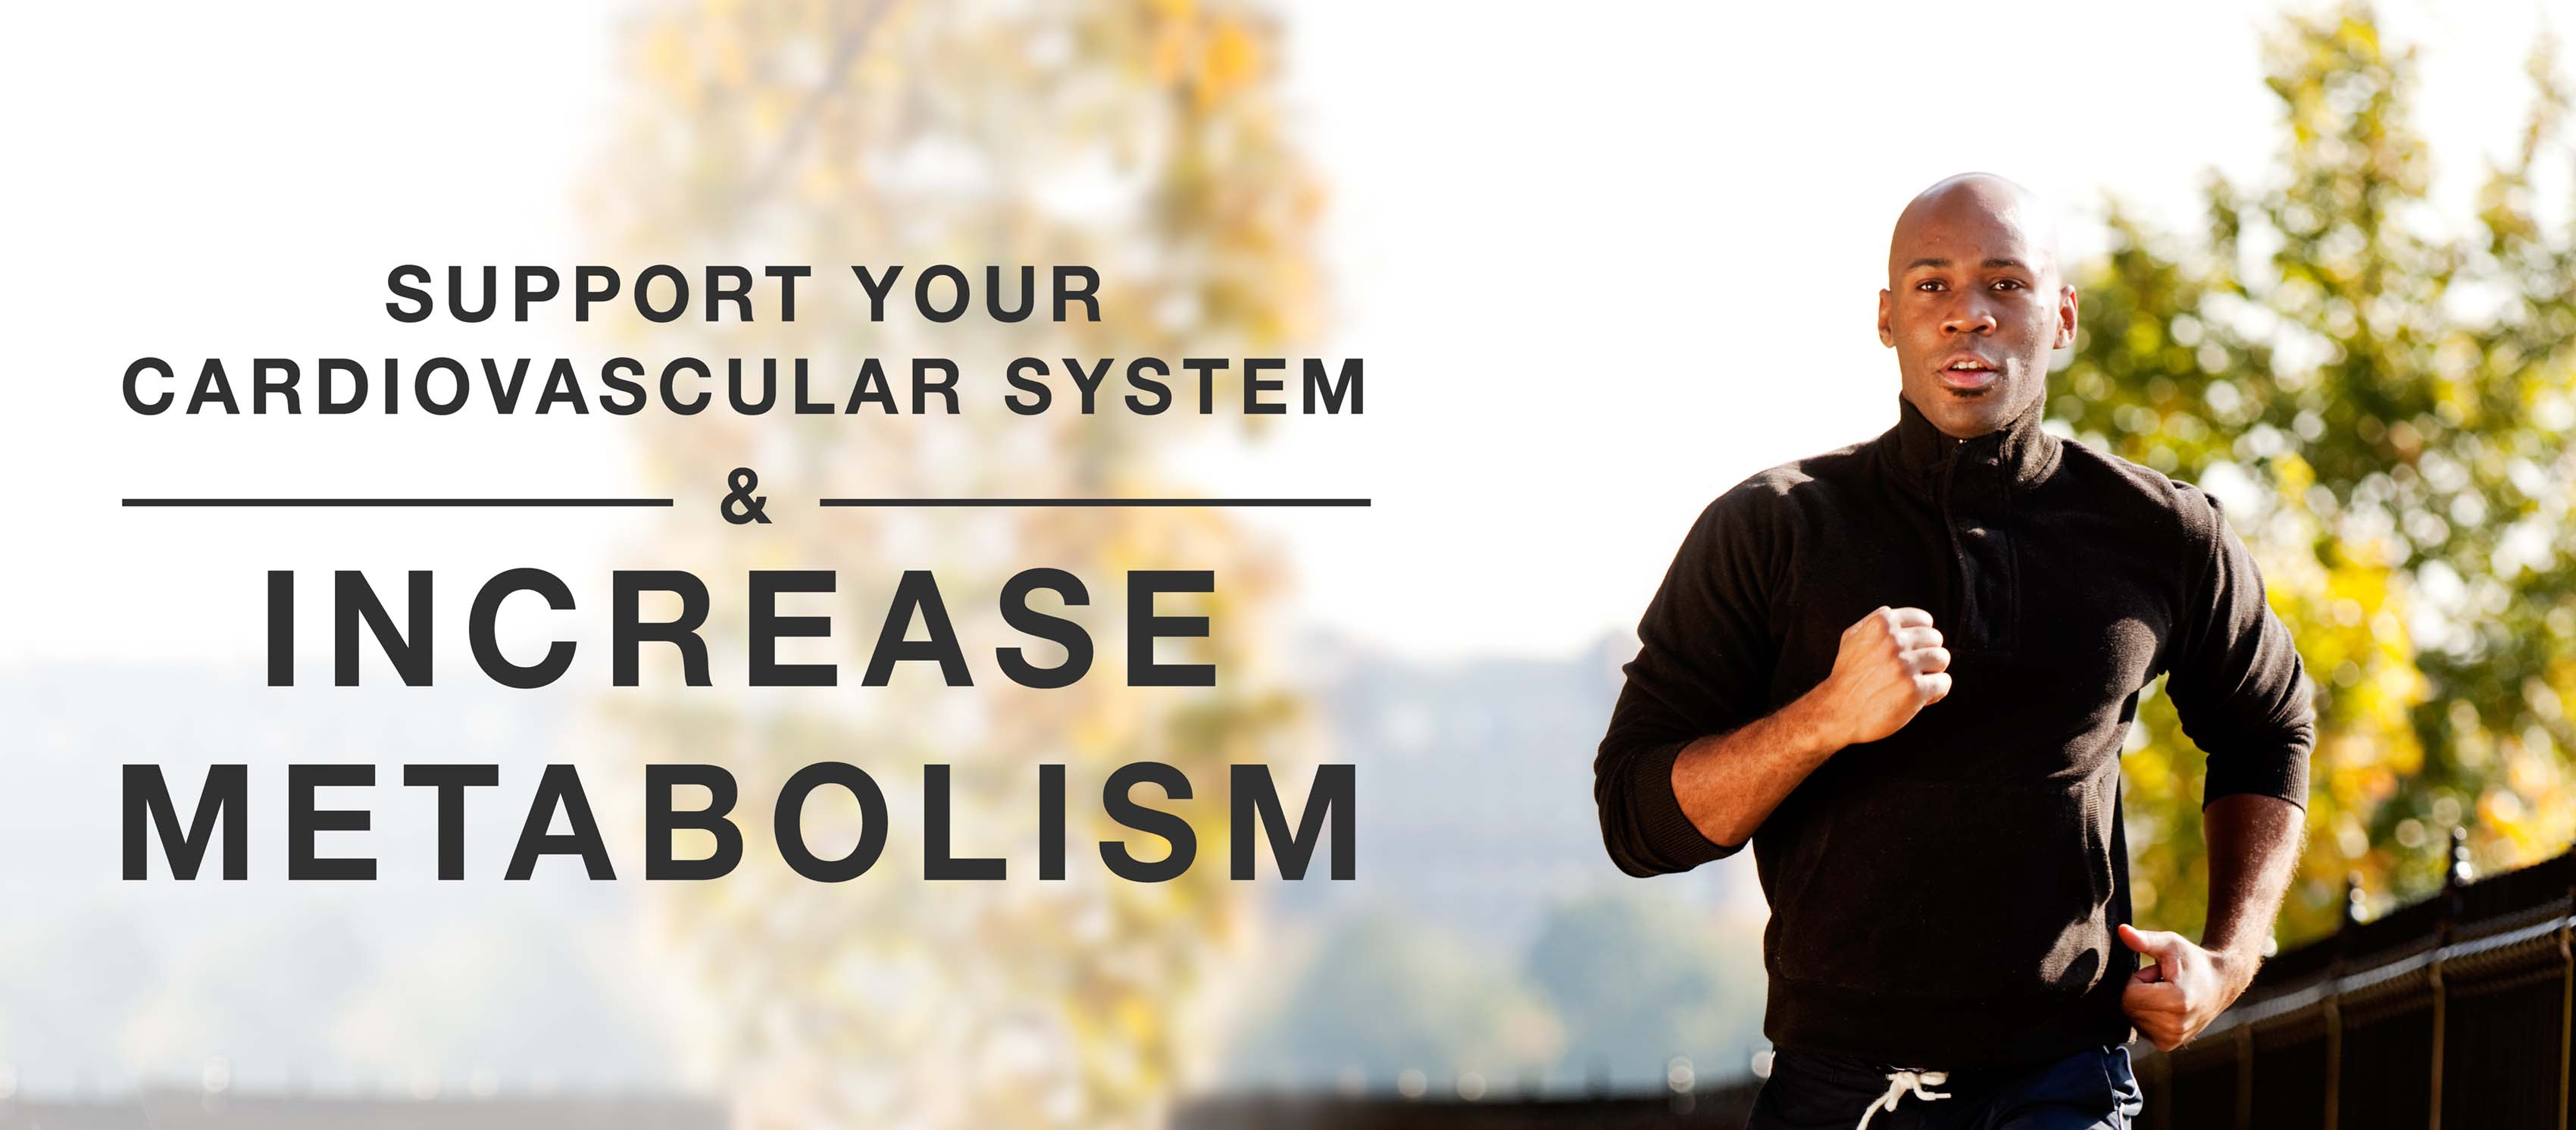 Support your cardiovascular system and increase metabolism.